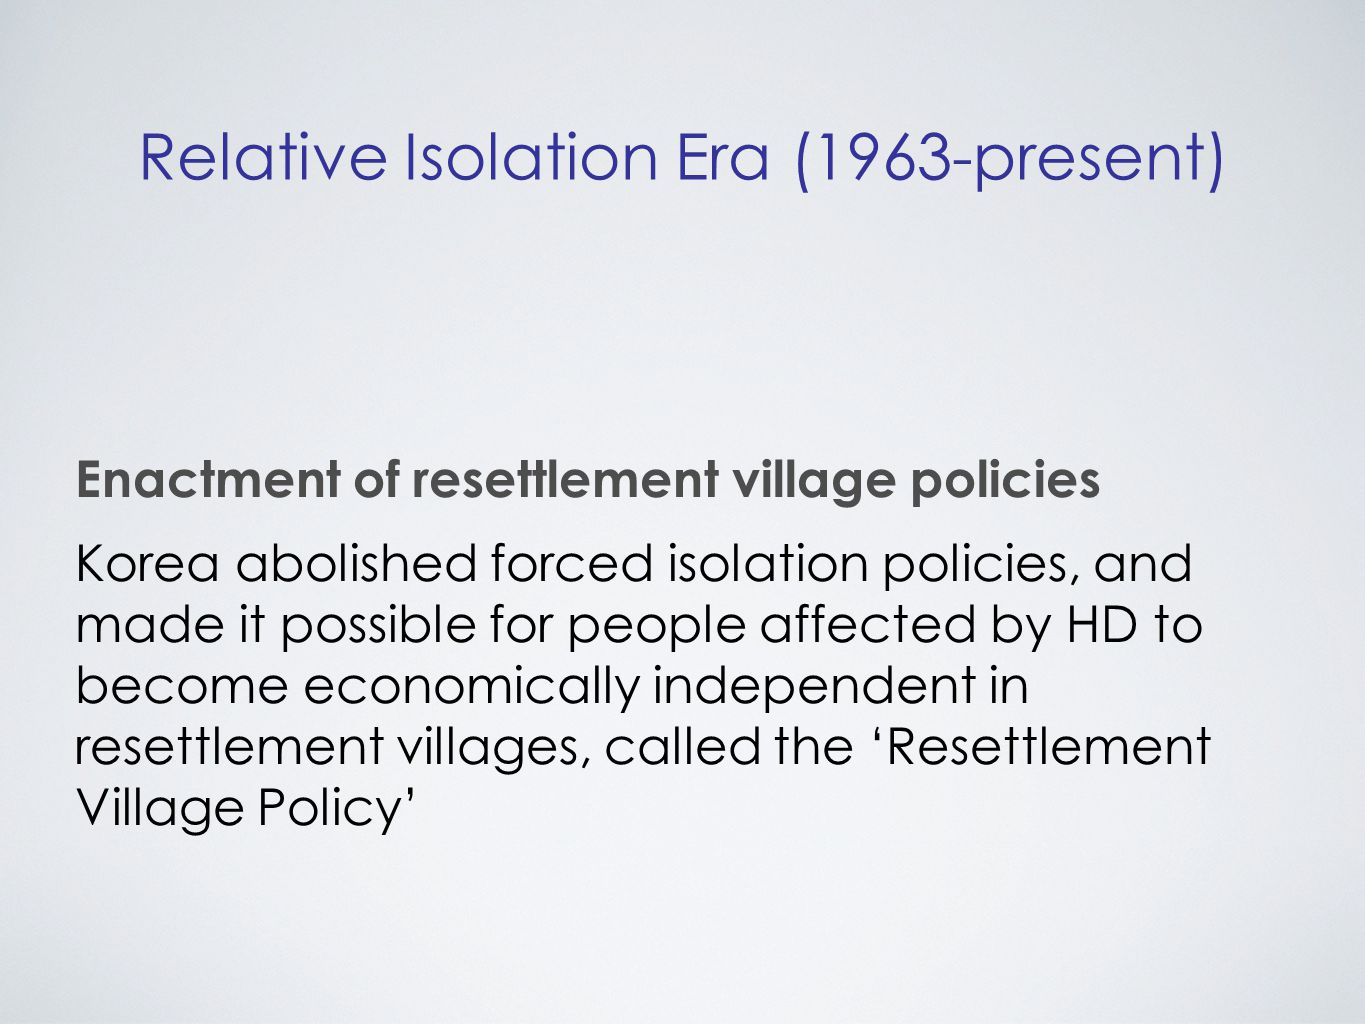 Relative Isolation Era (1963-present) Enactment of resettlement village policies Korea abolished forced isolation policies, and made it possible for people affected by HD to become economically independent in resettlement villages, called the 'Resettlement Village Policy'